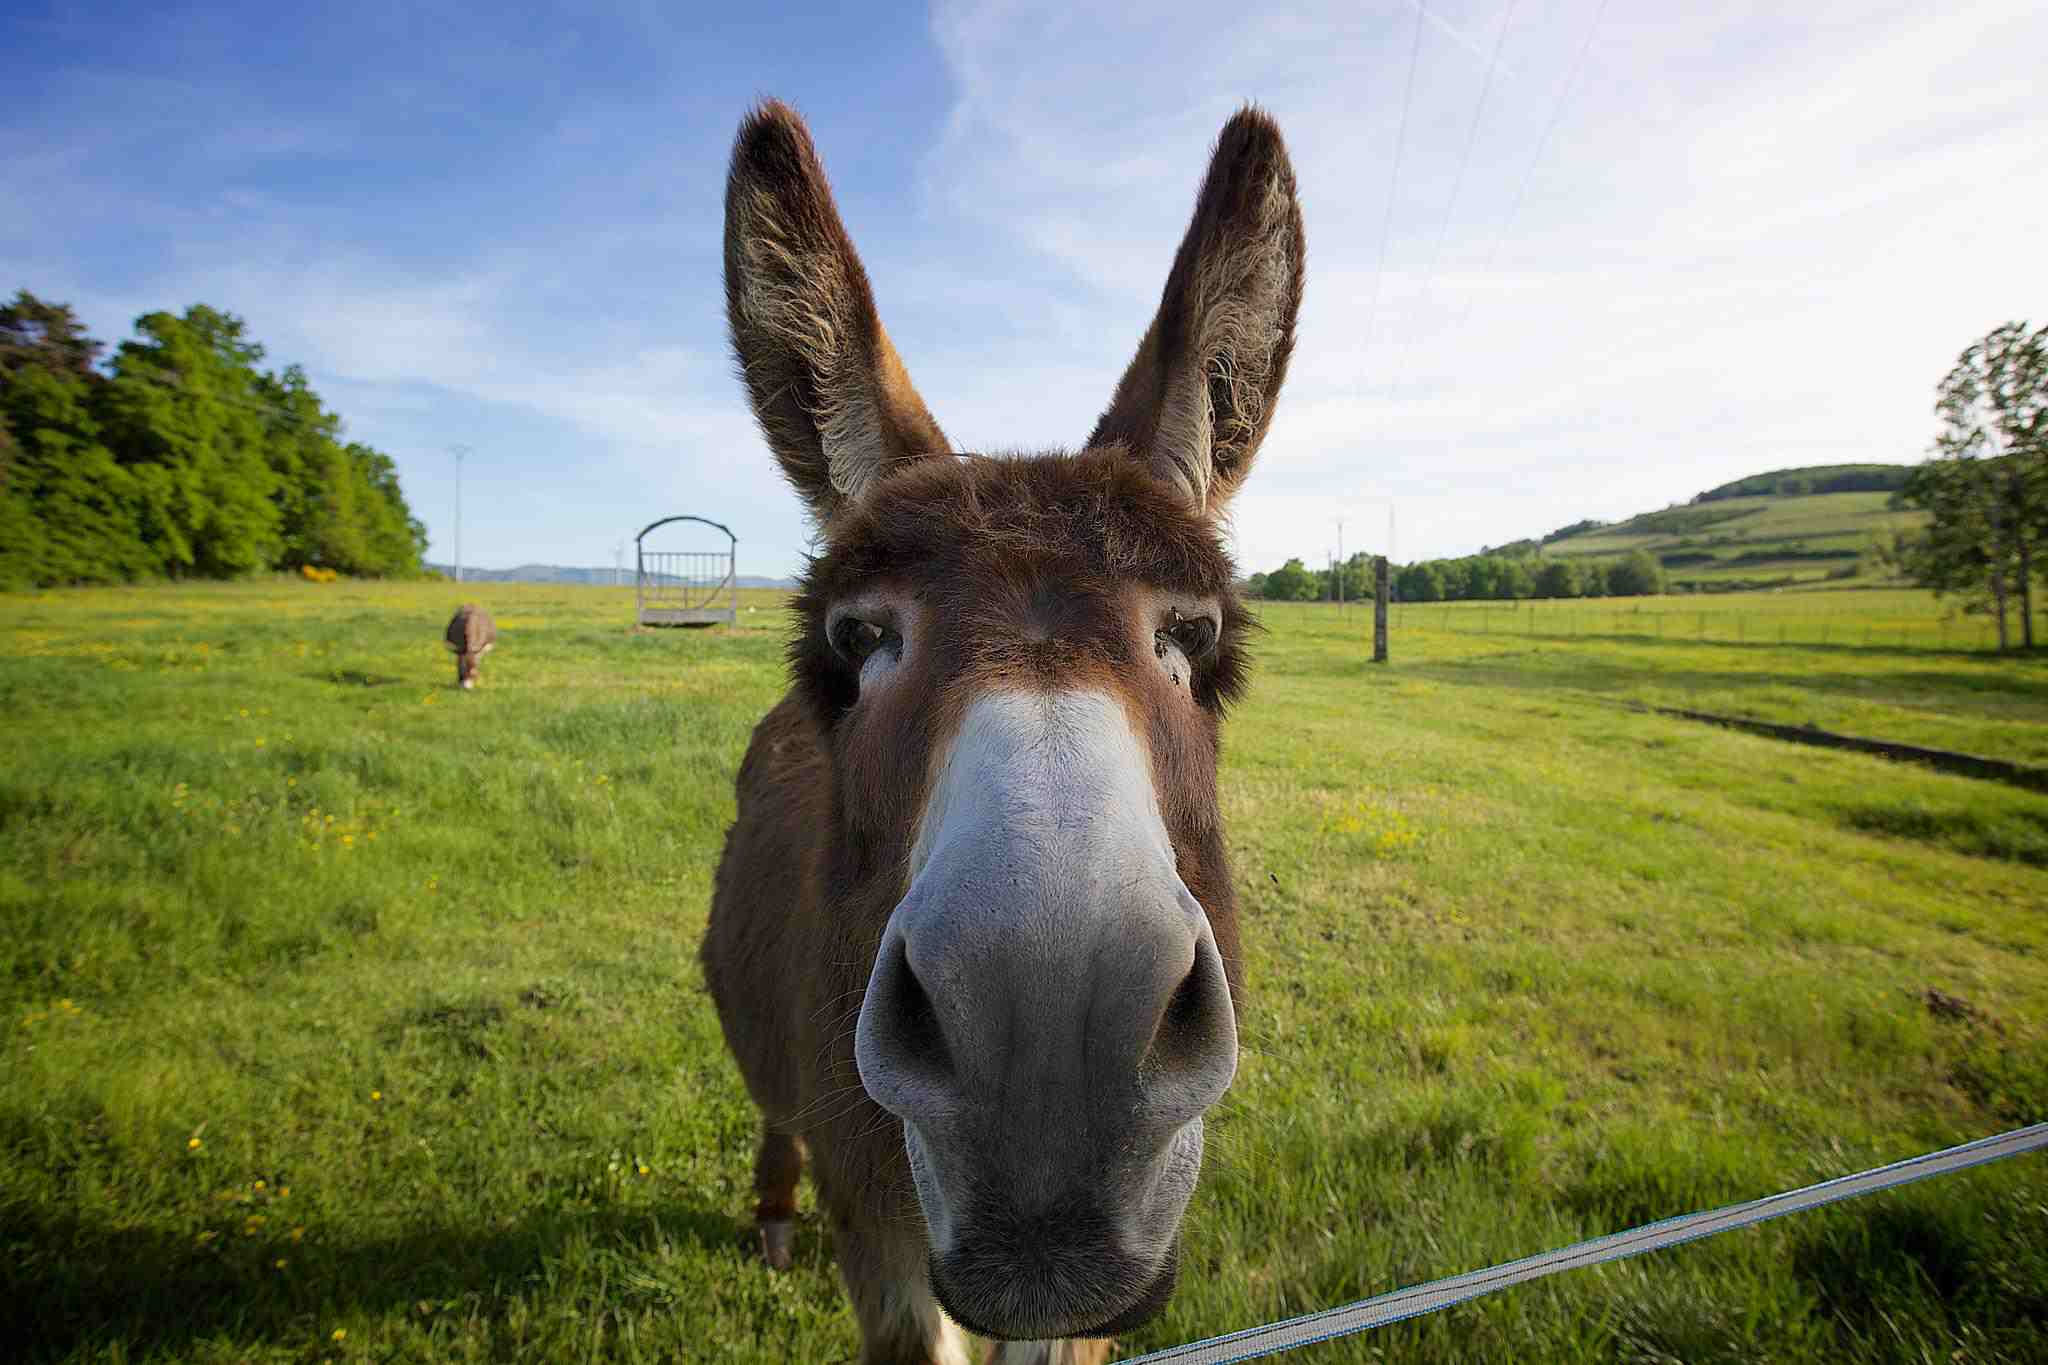 Donkey standing in field, nose toward camera.